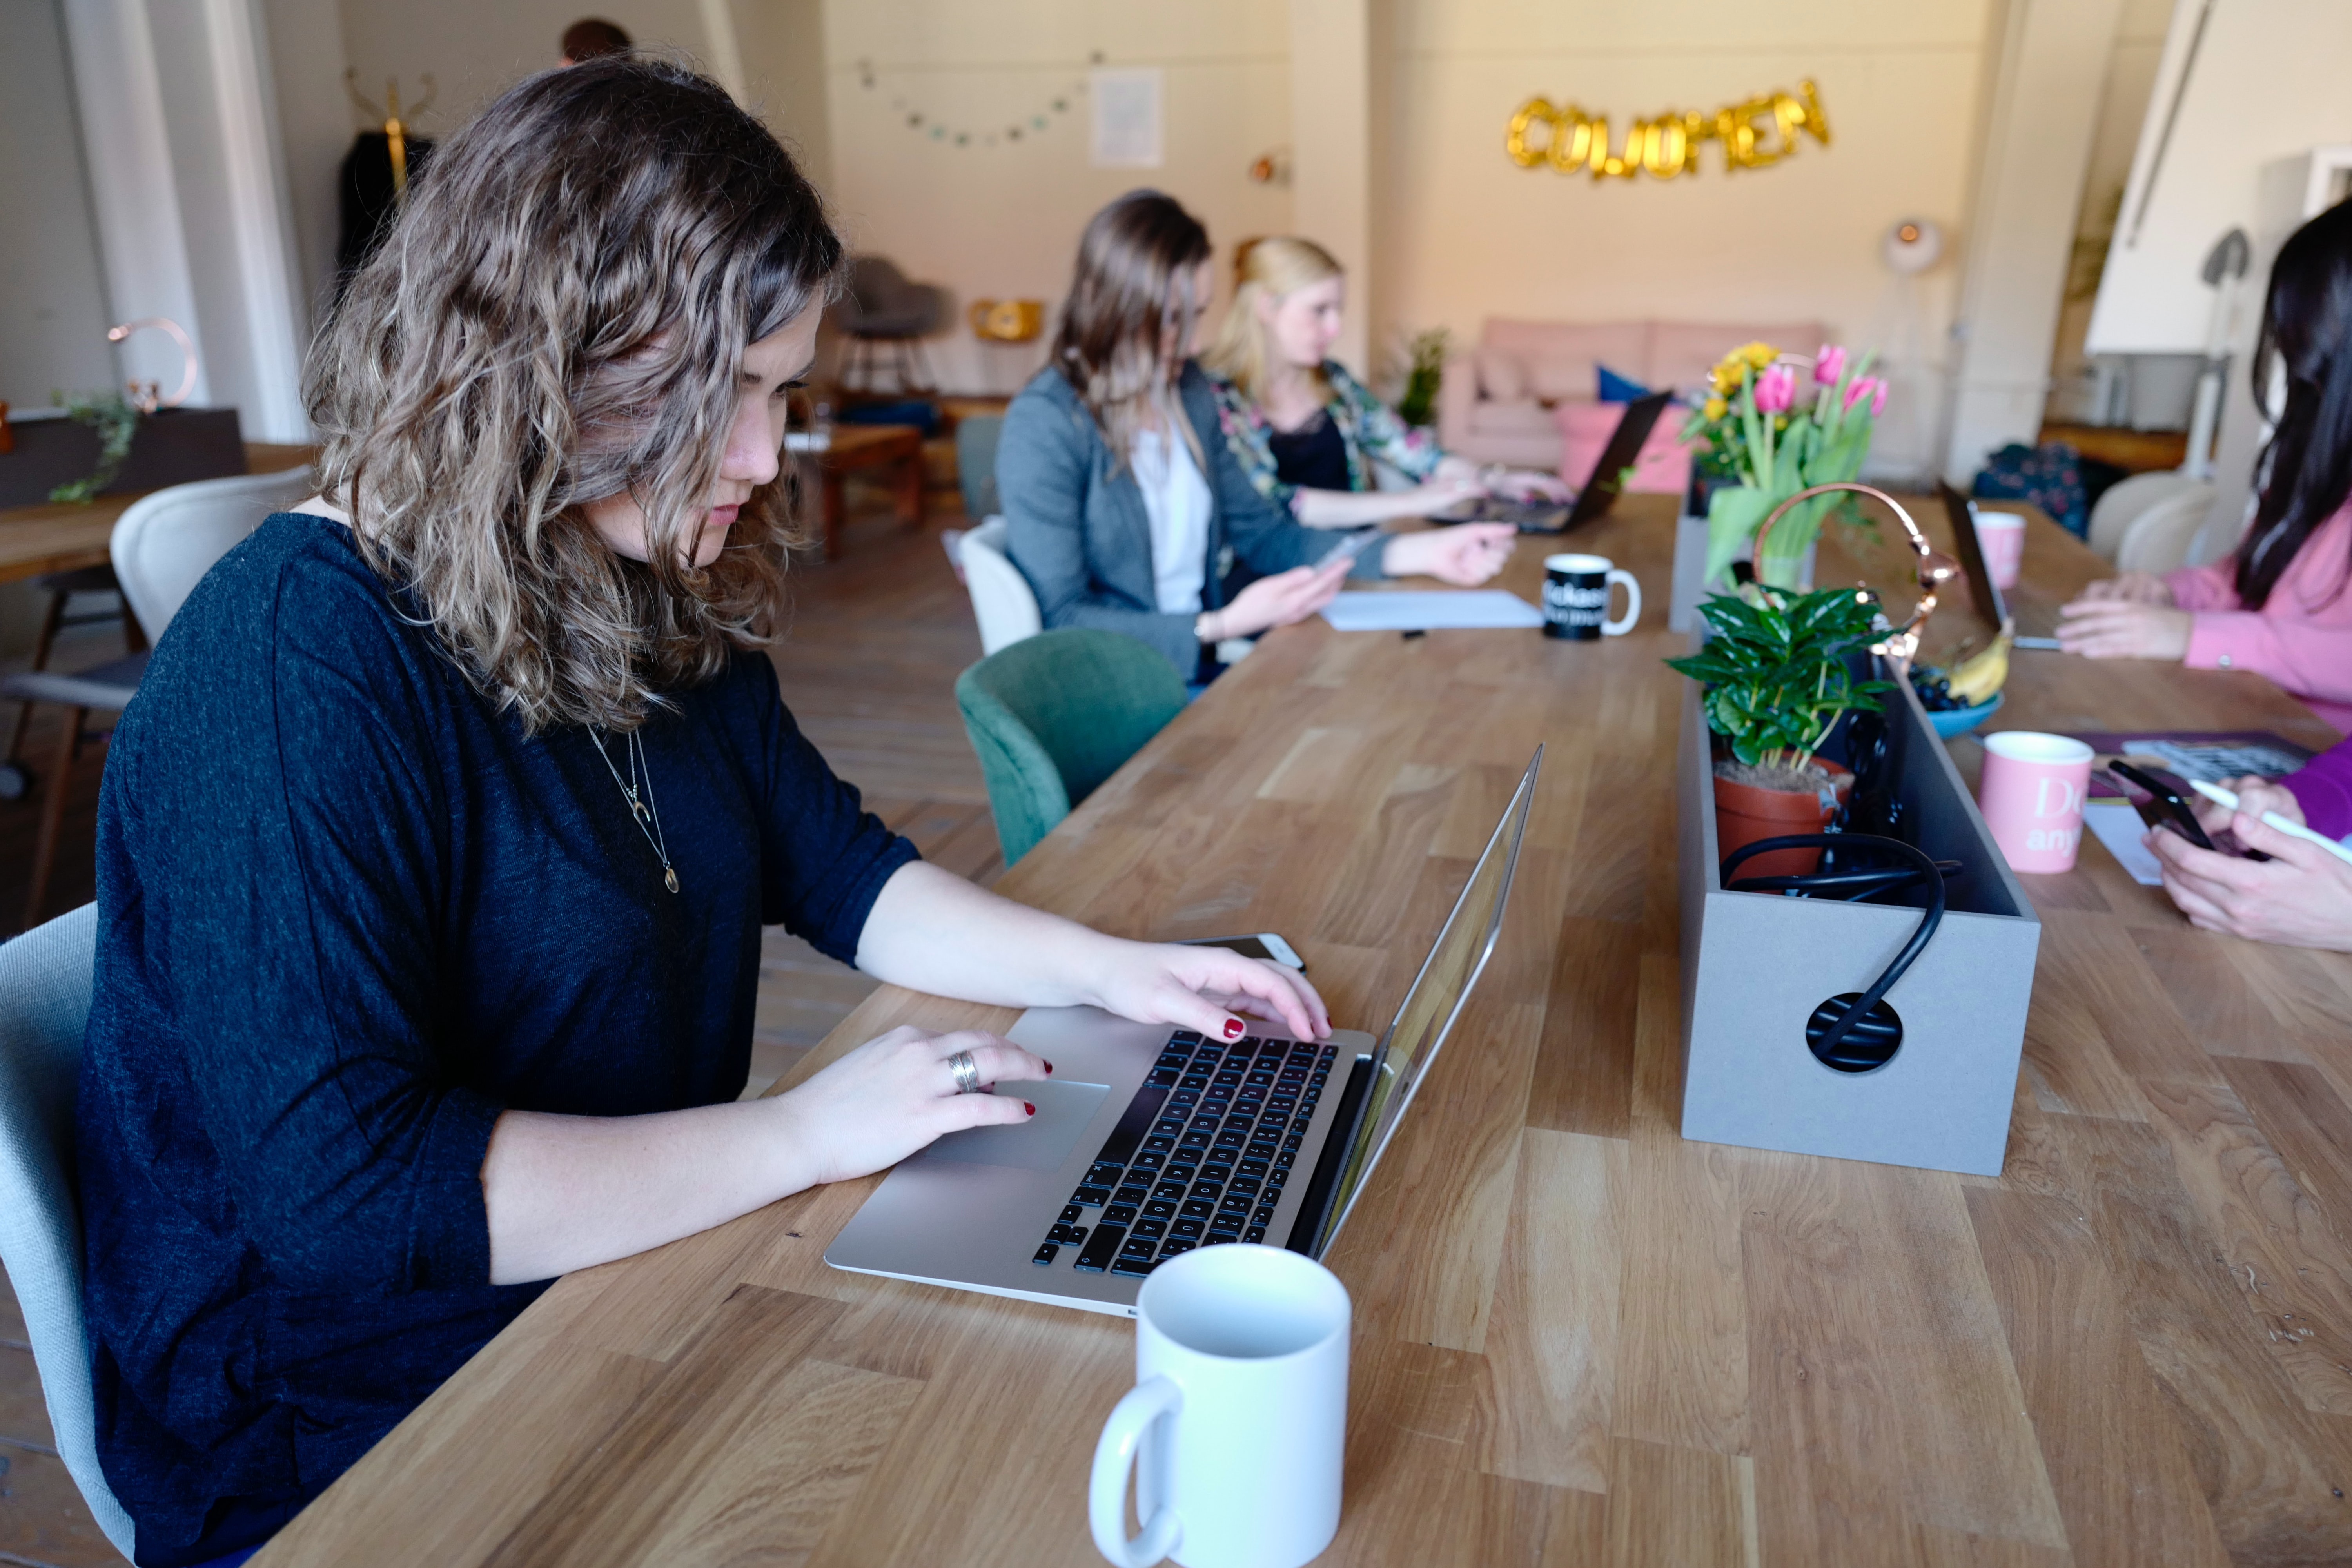 How Using a Coworking Space Can Positively Impact Your Work